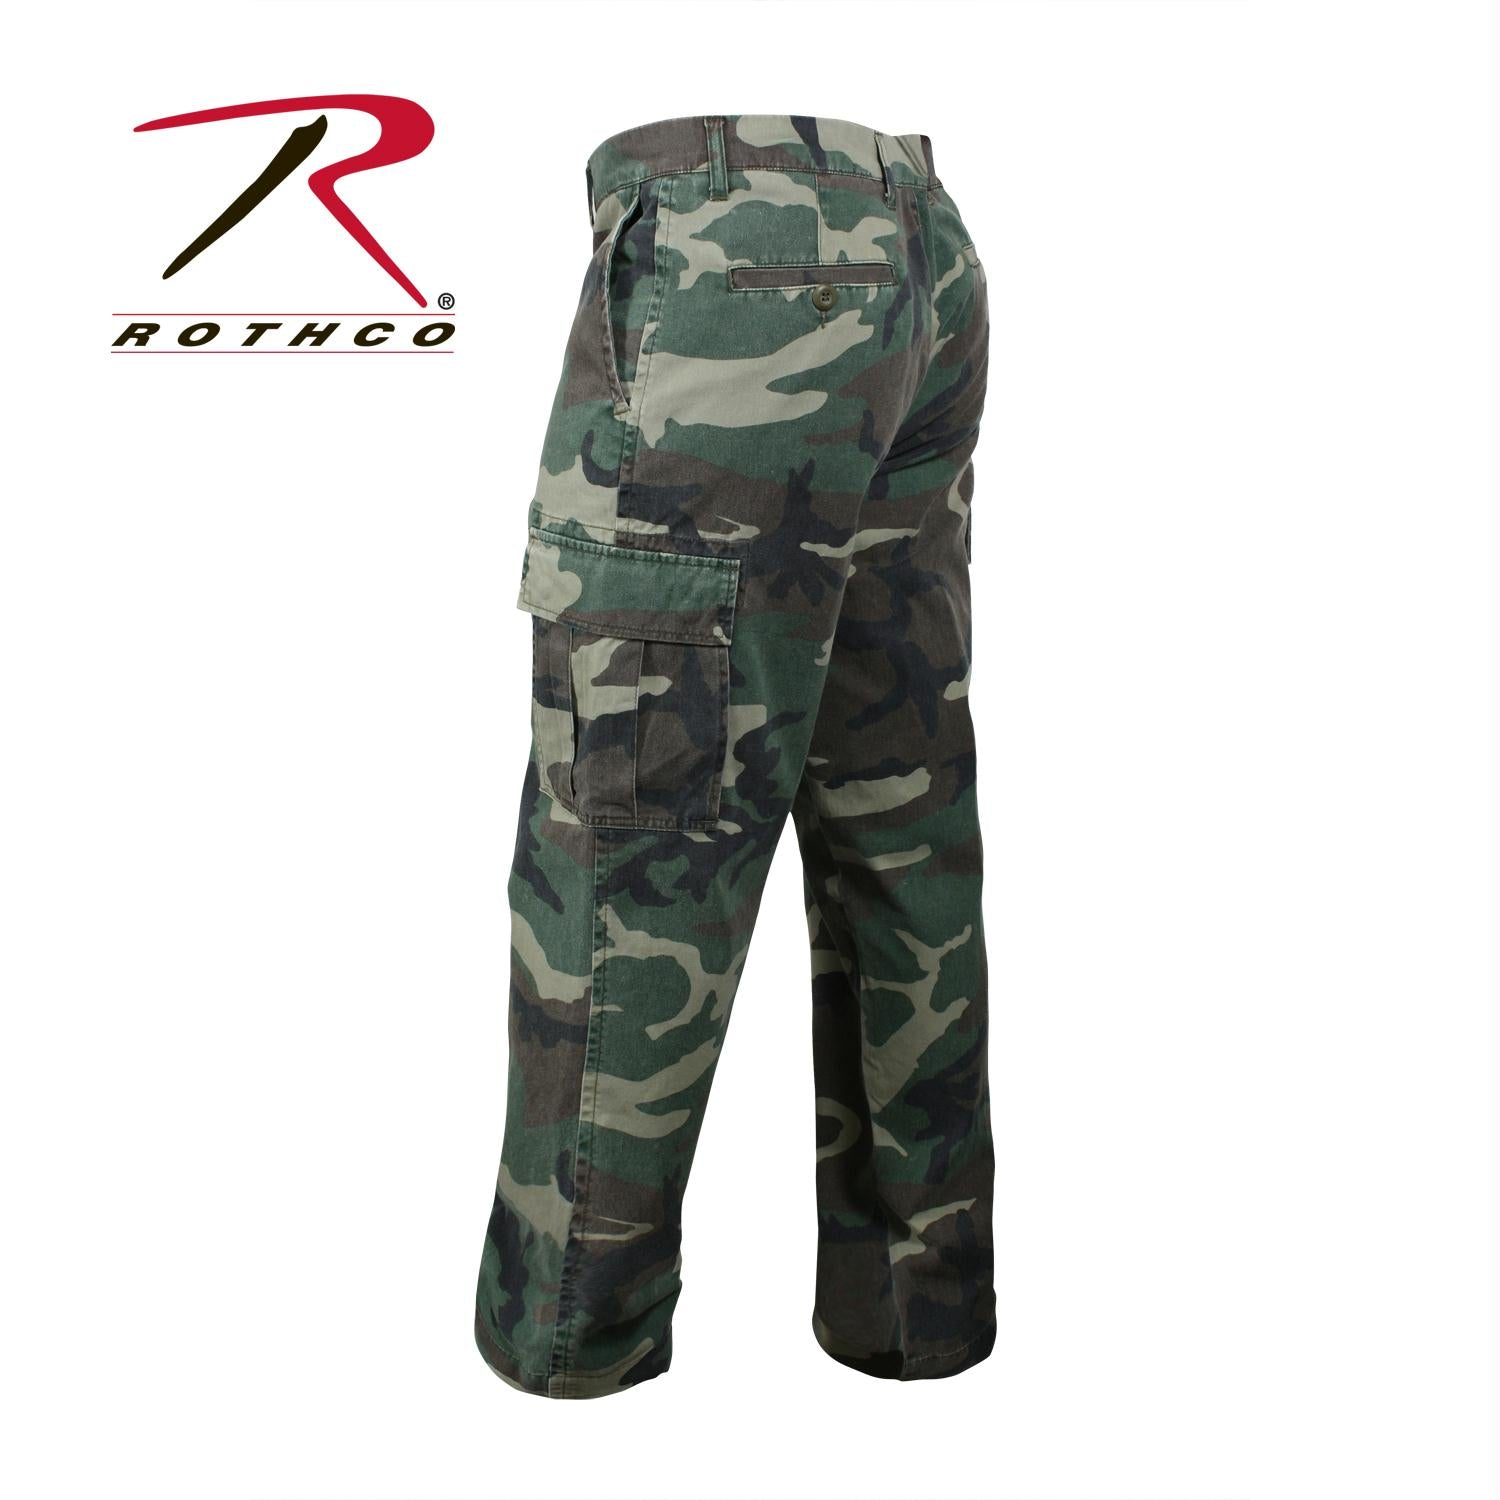 Rothco Vintage 6-Pocket Flat Front Fatigue Pants - Woodland Camo / 40